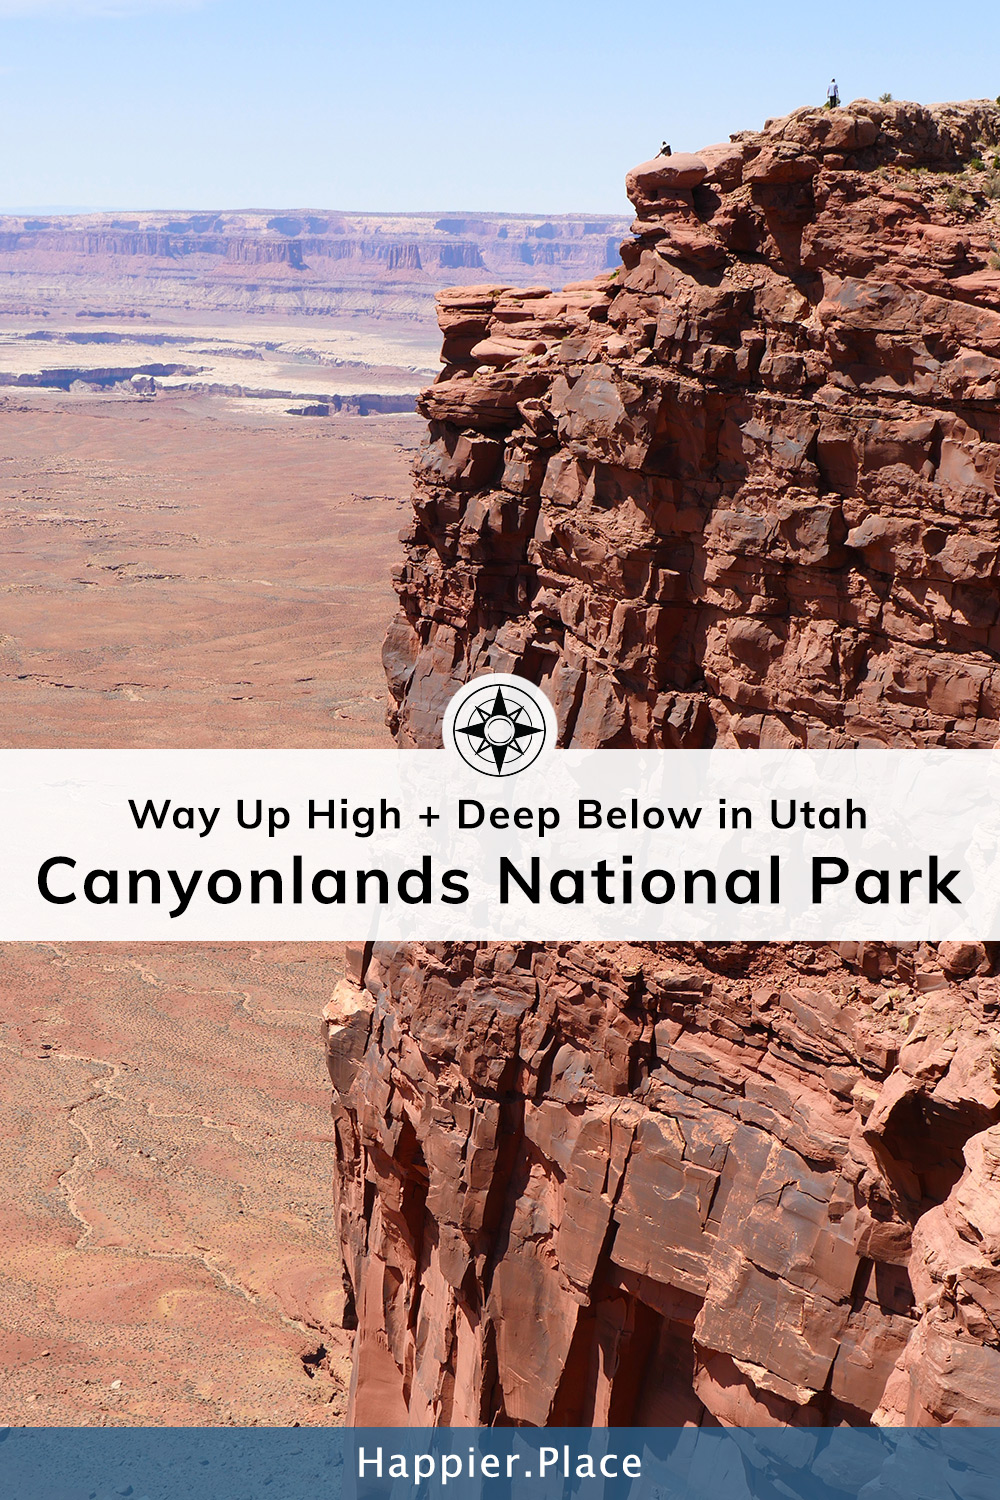 Four Parks In One: Canyonlands National Park (Utah)